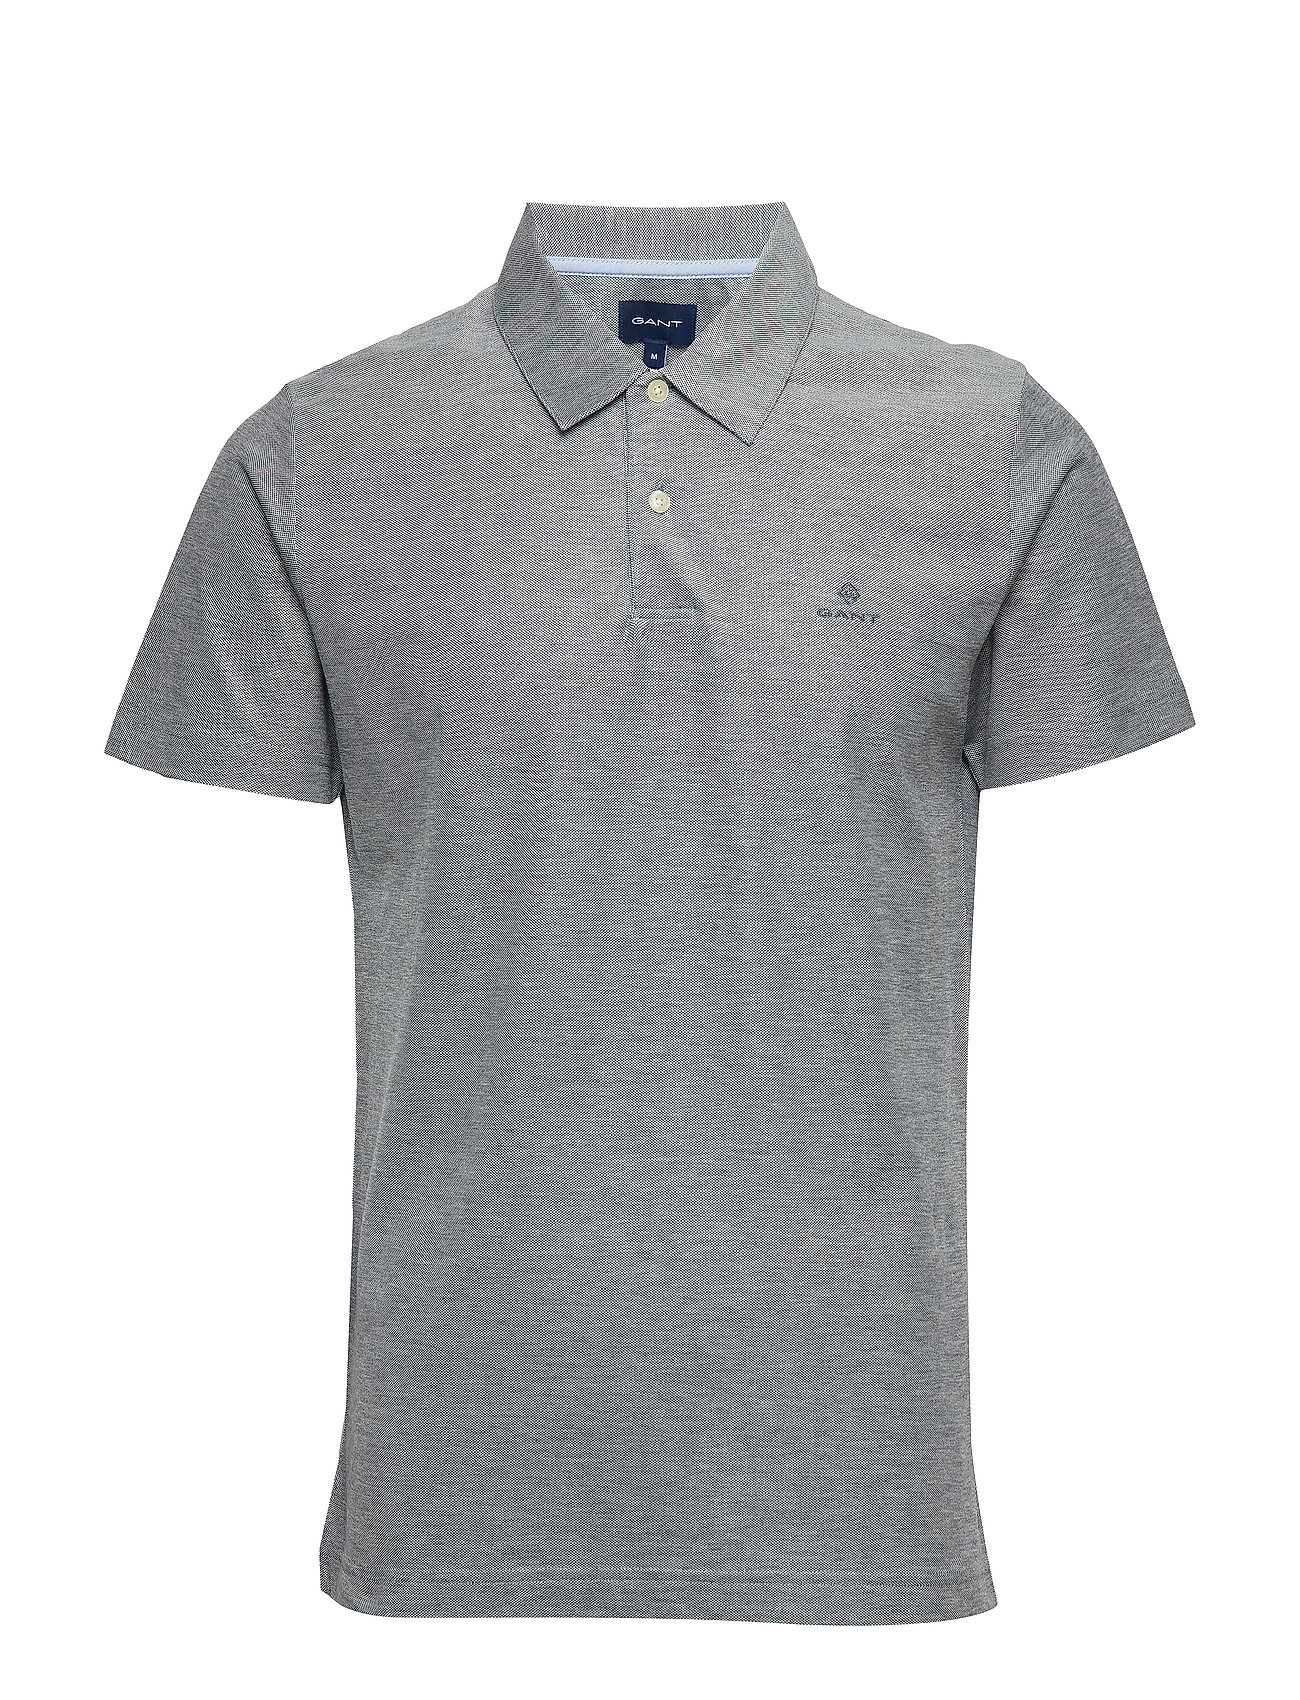 Gant D1. OXFORD PIQUE SS RUGGER - EVENING BLUE